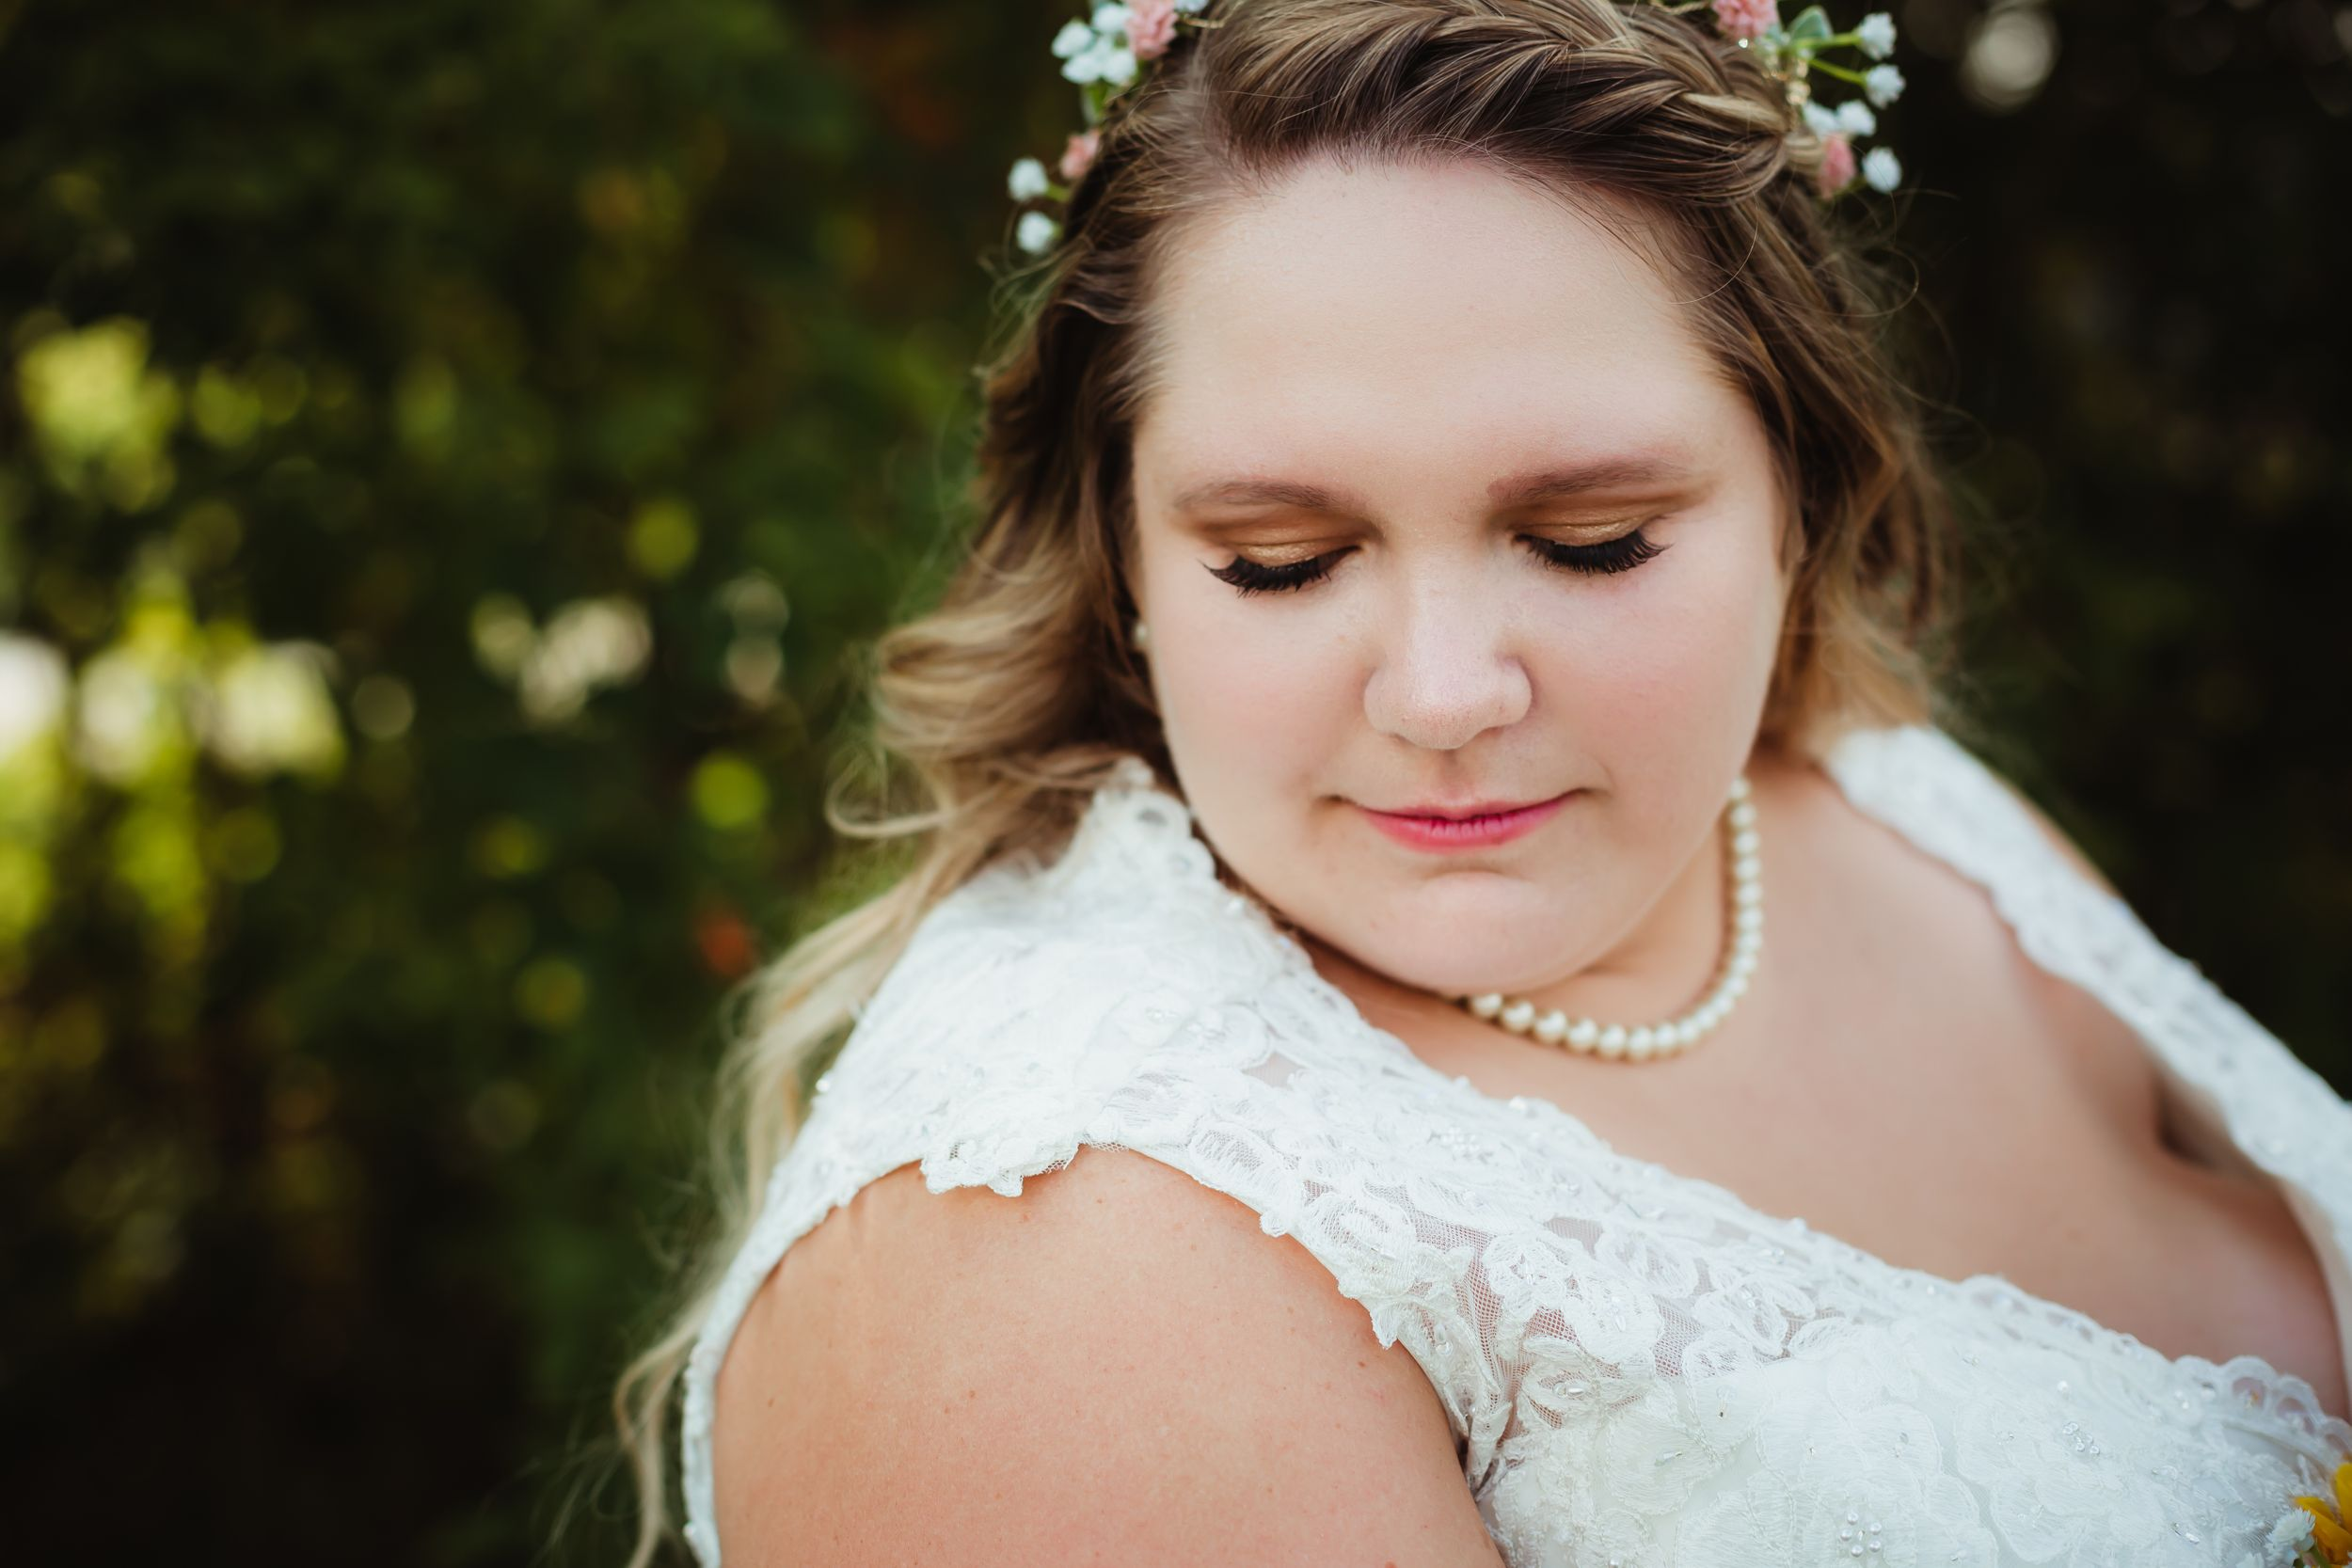 Close up of bride looking down at her shoulder. She has false eyelashes and a pearl necklace.